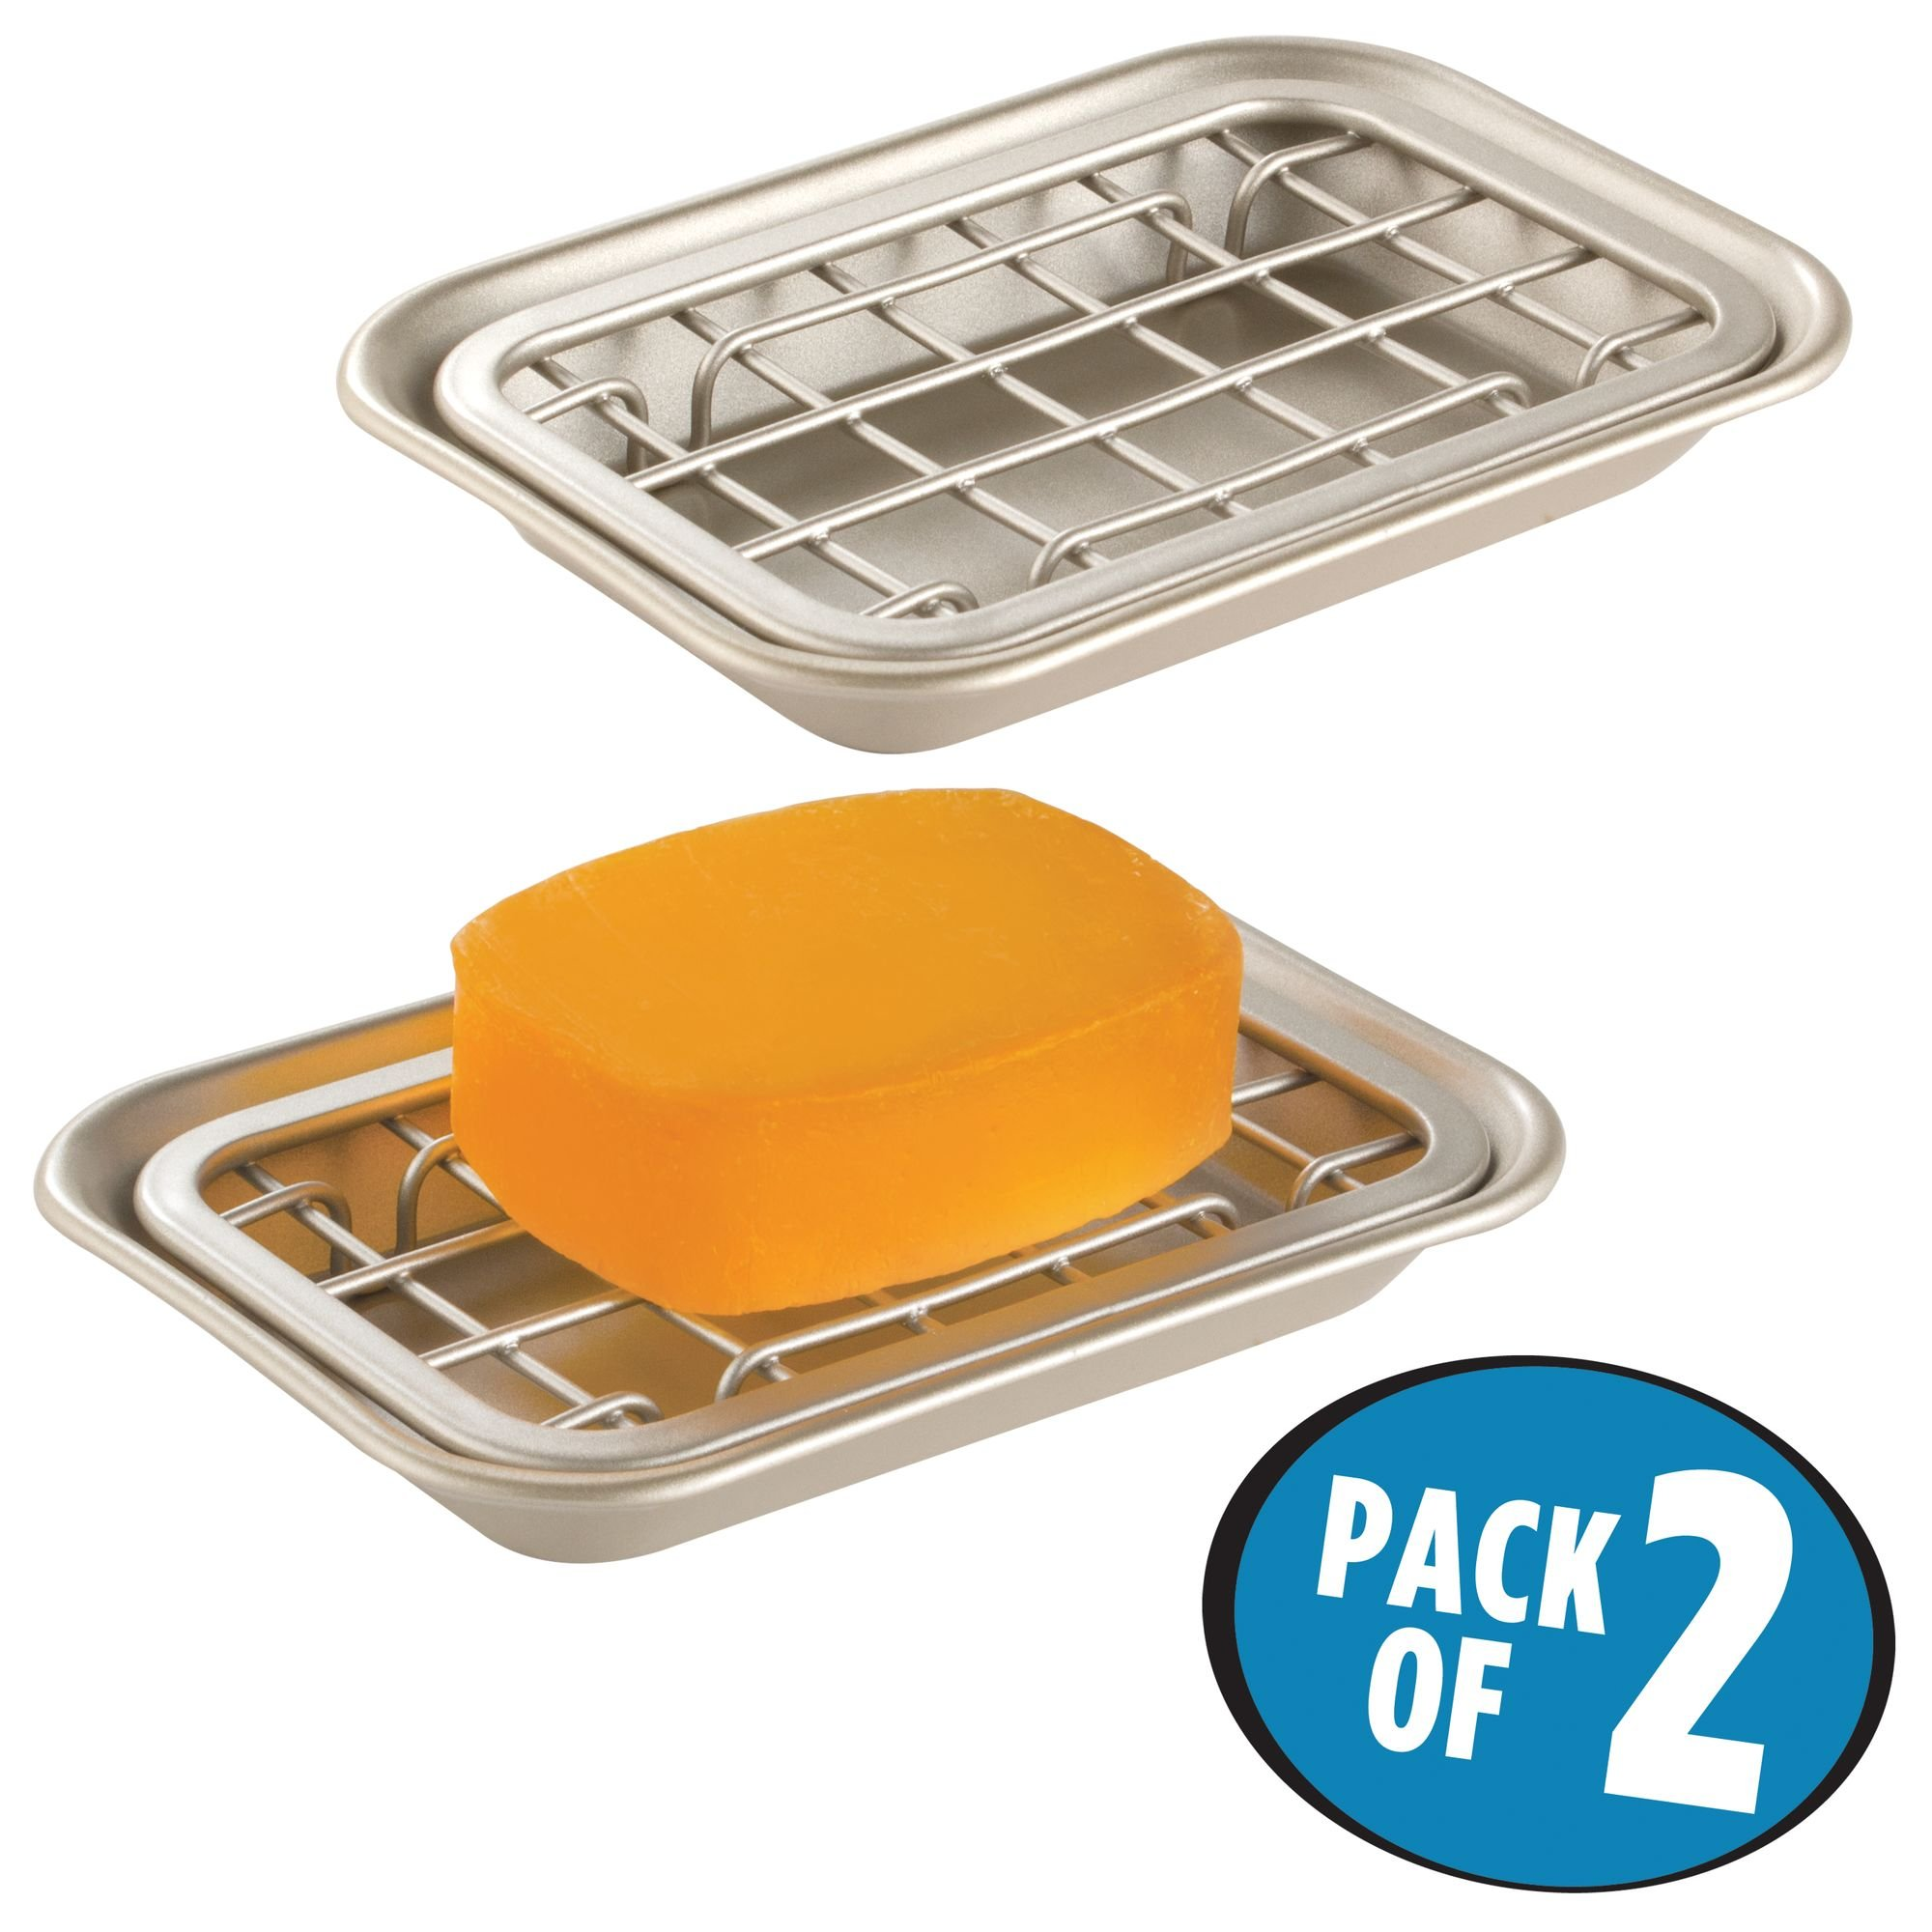 mDesign 2-Piece Soap Dish Tray for Kitchen Sink Countertops: Drainer and Holder for Soap, Sponges - Drainage Grid with Tray - Pack of 2, Rust Resistant Stainless Steel Metal in Satin Finish